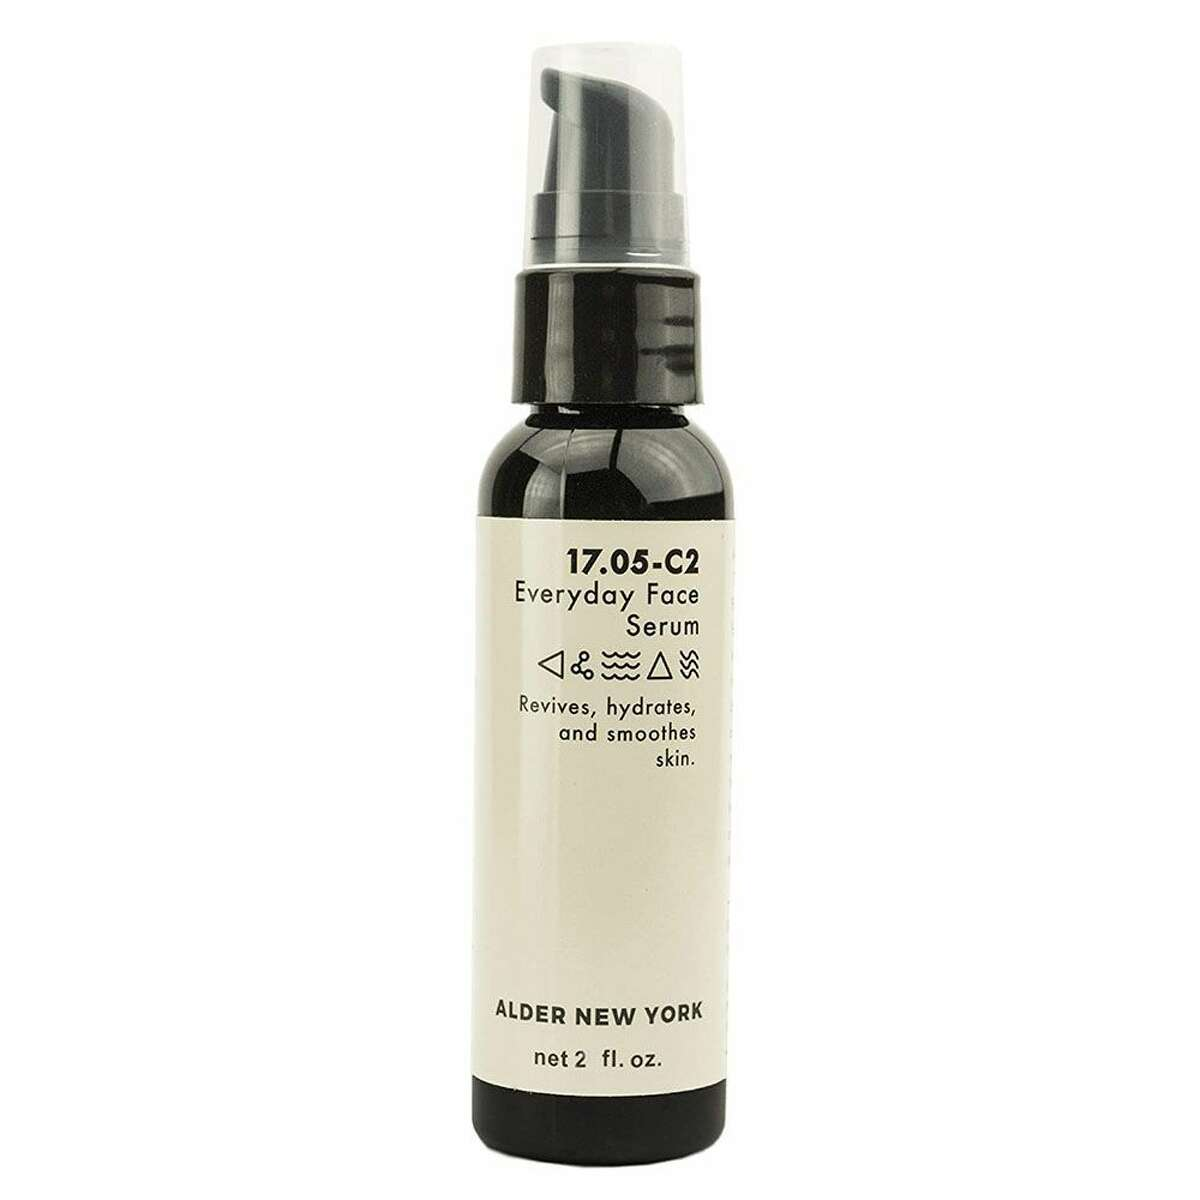 1) Alder New York Everyday Face Serum: $36.00 Shop Now Alder New York's impressive vegan products will revive your skin with only the best Mother Nature has to offer. No toxins or unnecessary packaging here: just great products that are good for your skin and good for the planet. This serum is our favorite from this indie skincare brand for its lightweight and fast-absorbing formula. It uses a trifecta of hyaluronic acid, salicylic acid, and rosemary extract to balance oil and reduce inflammation while plumping and hydrating your complexion. More: 15 Clean Beauty Brands That We're Loving